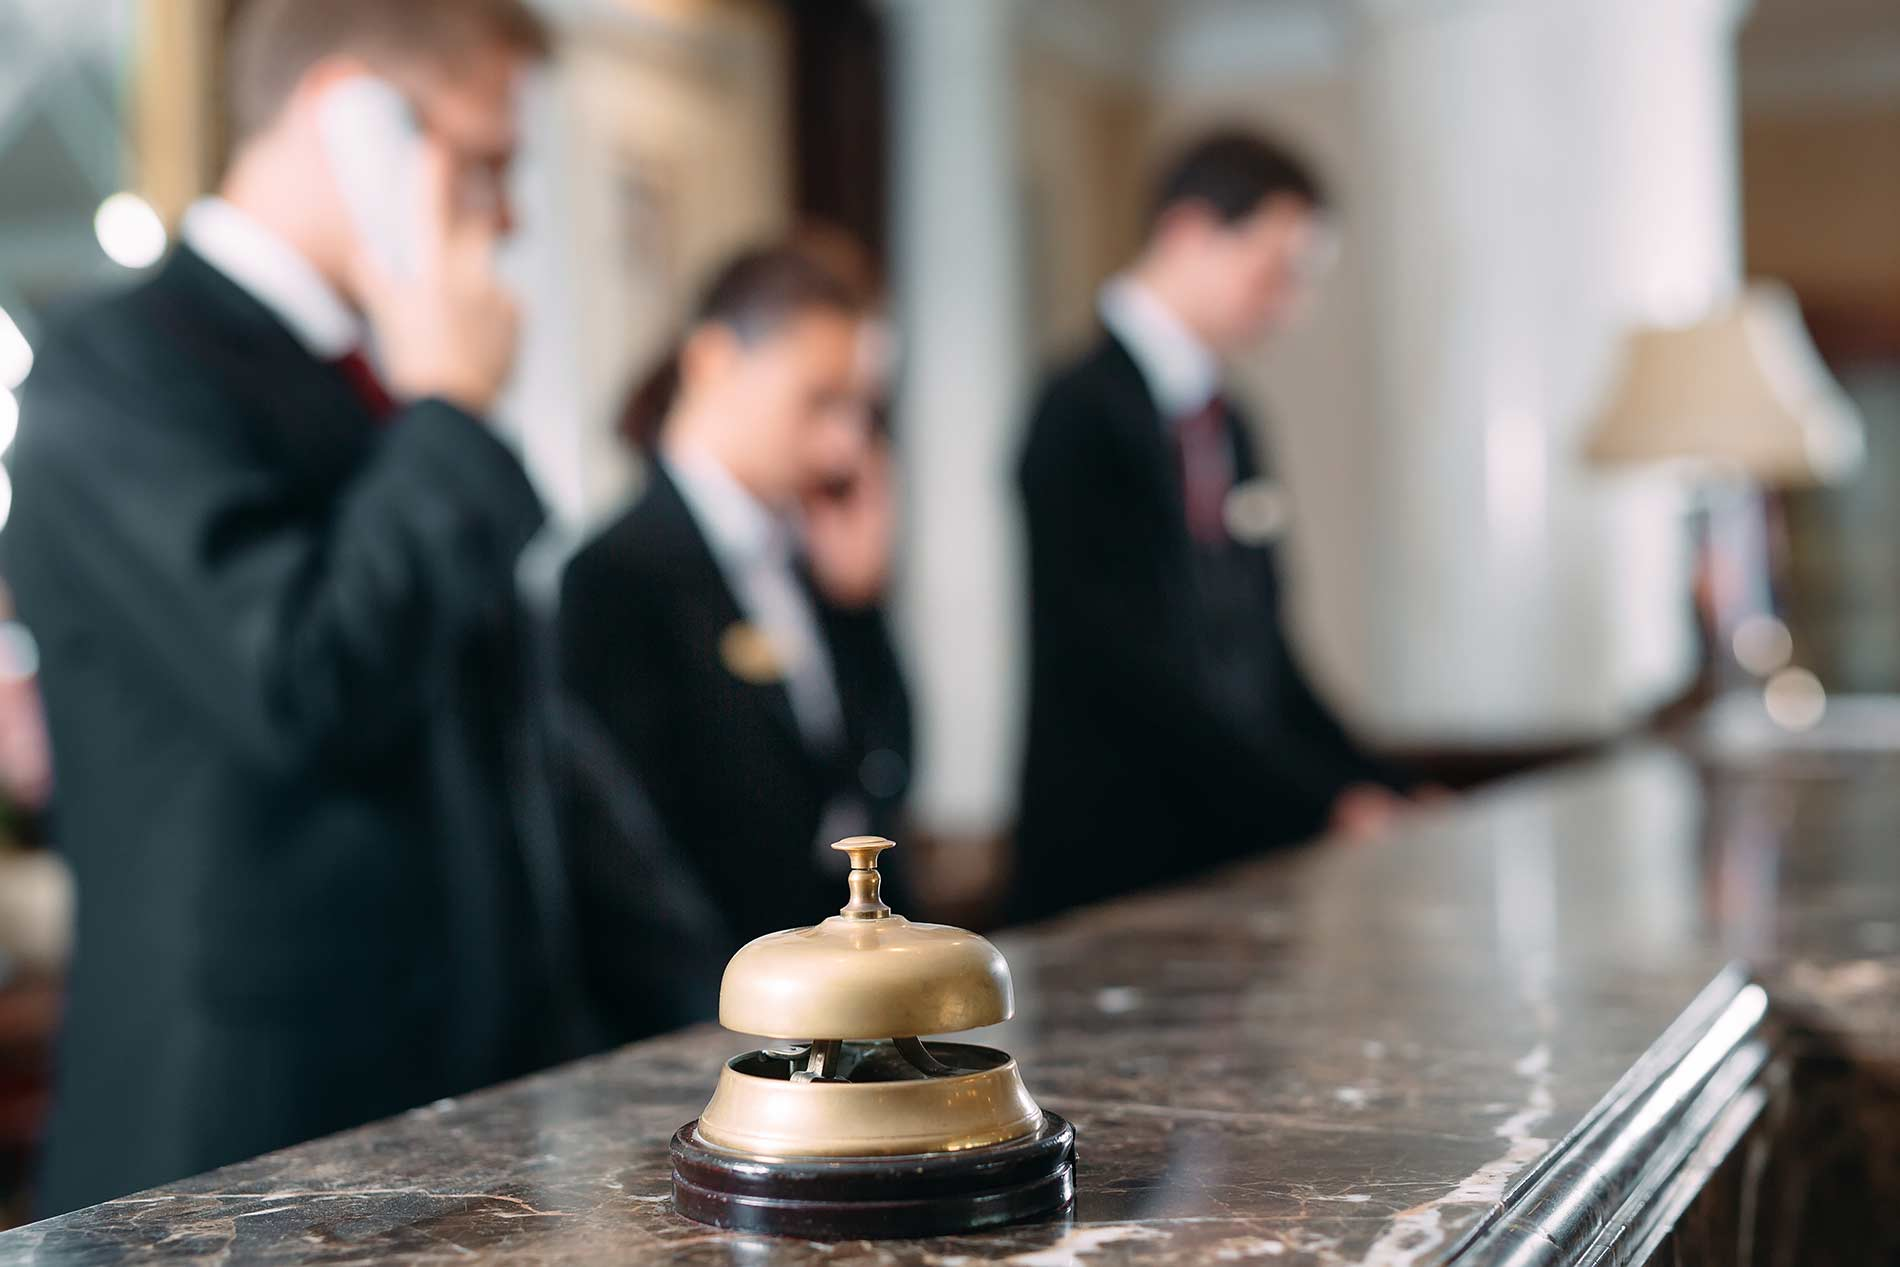 Reception and Building Security in Sheffield